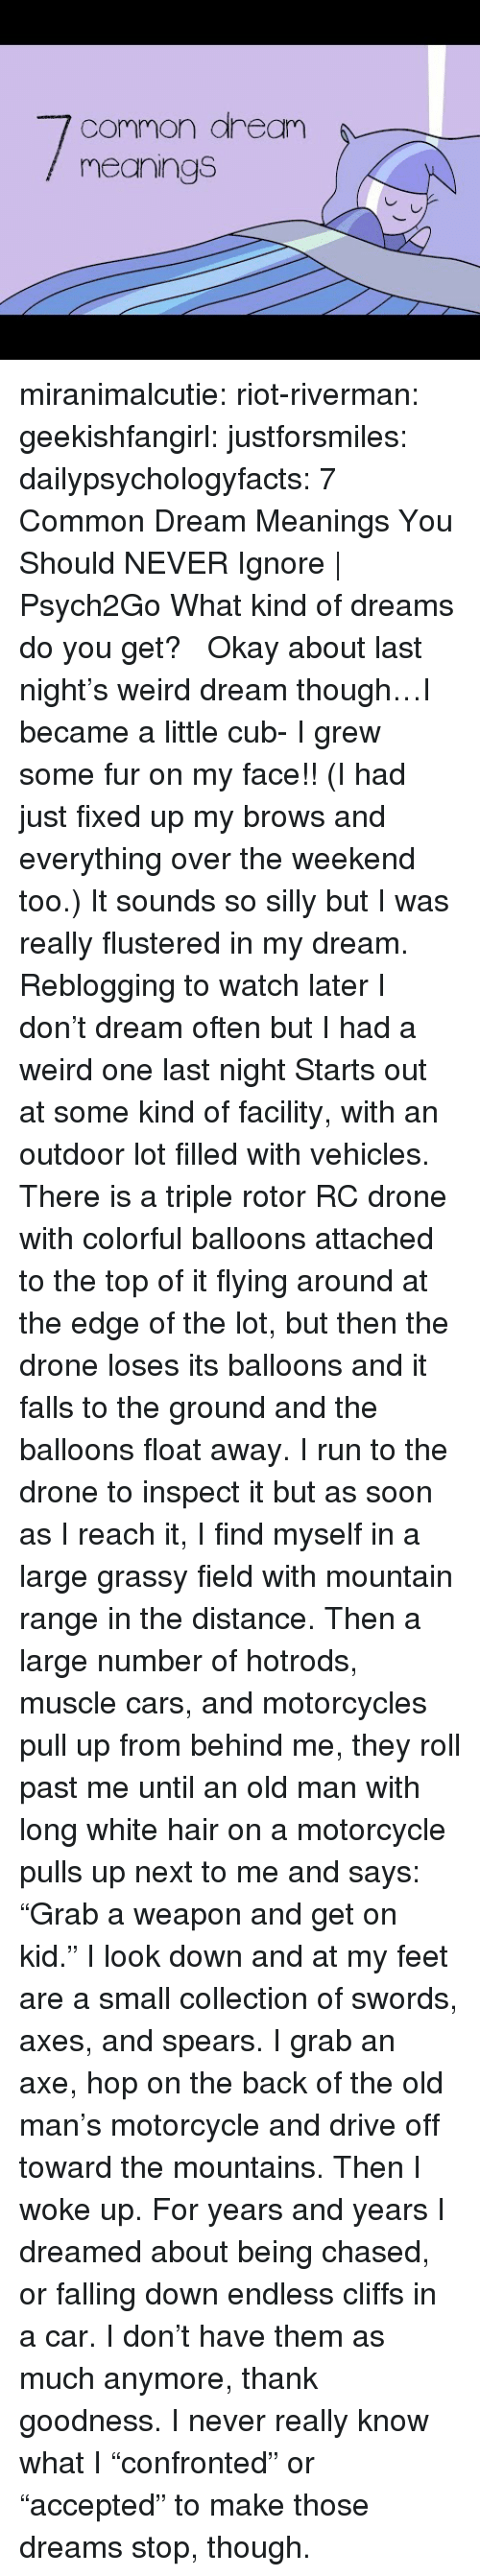 "Cars, Drone, and Old Man: common aream  meanings miranimalcutie:  riot-riverman: geekishfangirl:  justforsmiles:  dailypsychologyfacts:  7 Common Dream Meanings You Should NEVER Ignore | Psych2Go What kind of dreams do you get?    Okay about last night's weird dream though…I became a little cub- I grew some fur on my face!! (I had just fixed up my brows and everything over the weekend too.) It sounds so silly but I was really flustered in my dream.   Reblogging to watch later  I don't dream often but I had a weird one last night Starts out at some kind of facility, with an outdoor lot filled with vehicles. There is a triple rotor RC drone with colorful balloons attached to the top of it flying around at the edge of the lot, but then the drone loses its balloons and it falls to the ground and the balloons float away. I run to the drone to inspect it but as soon as I reach it, I find myself in a large grassy field with mountain range in the distance. Then a large number of hotrods, muscle cars, and motorcycles pull up from behind me, they roll past me until an old man with long white hair on a motorcycle pulls up next to me and says: ""Grab a weapon and get on kid."" I look down and at my feet are a small collection of swords, axes, and spears. I grab an axe, hop on the back of the old man's motorcycle and drive off toward the mountains. Then I woke up.   For years and years I dreamed about being chased, or falling down endless cliffs in a car. I don't have them as much anymore, thank goodness. I never really know what I ""confronted"" or ""accepted"" to make those dreams stop, though."